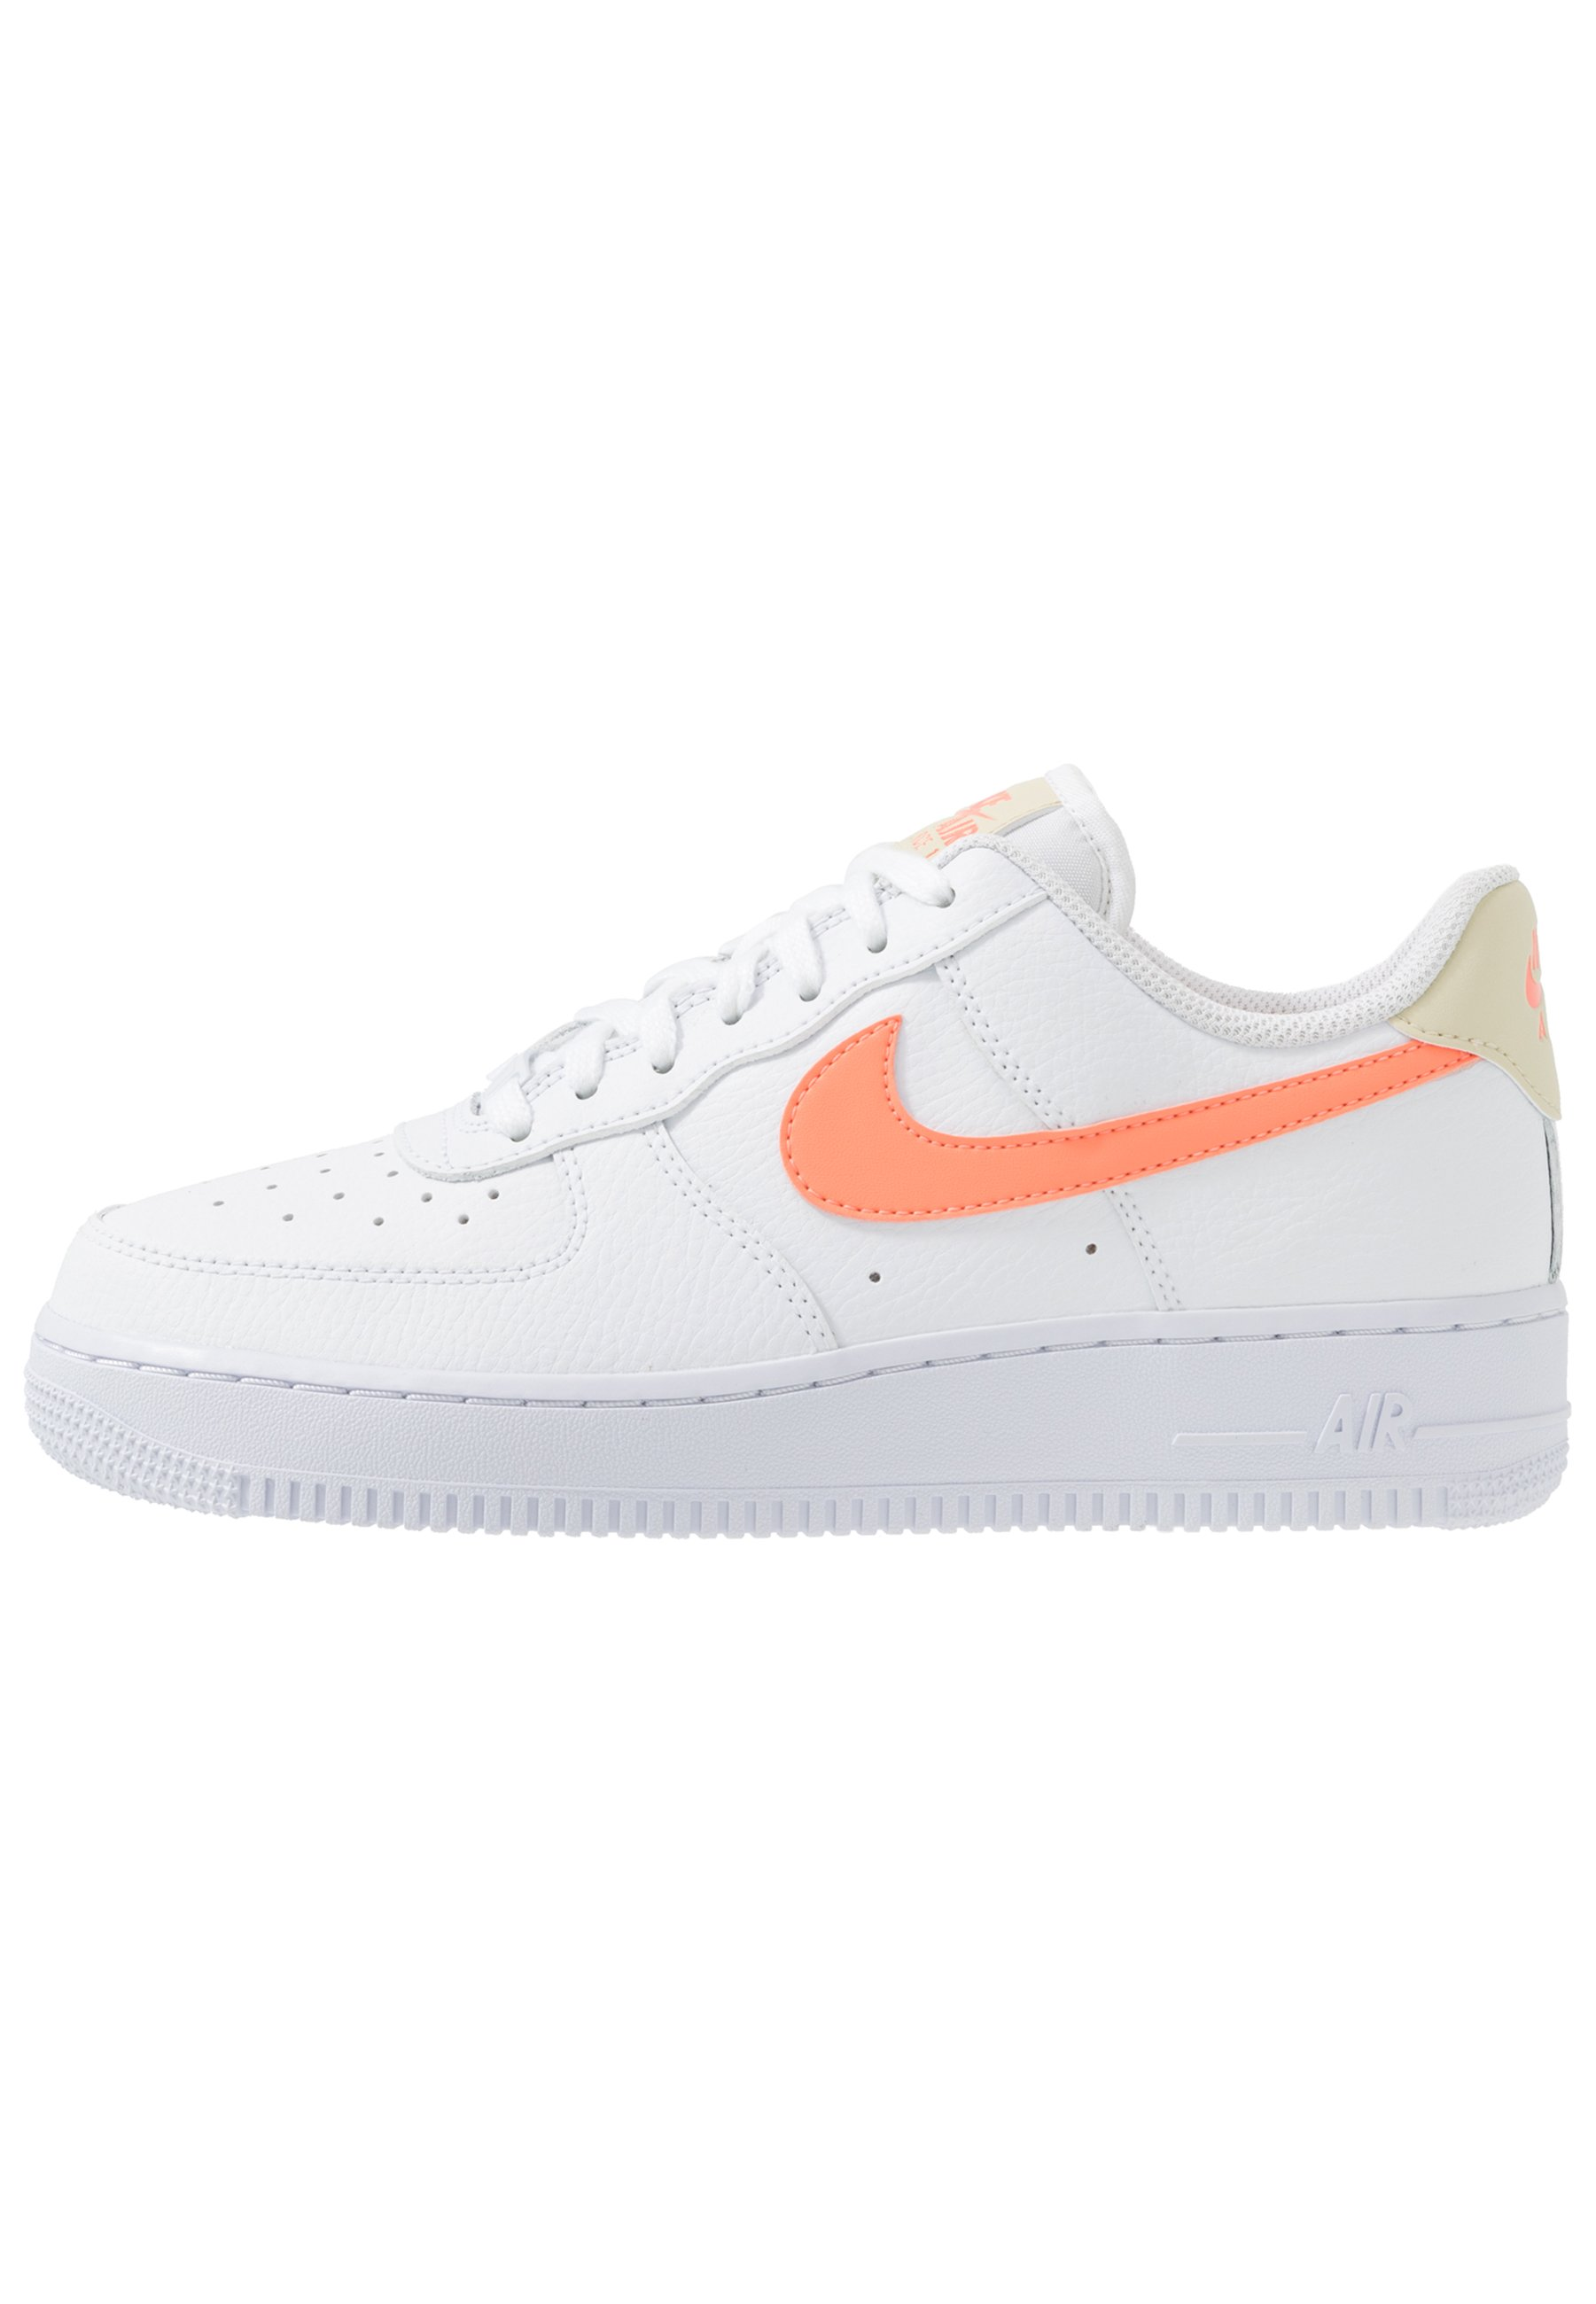 AIR FORCE 1 Joggesko whiteatomic pinkfossil